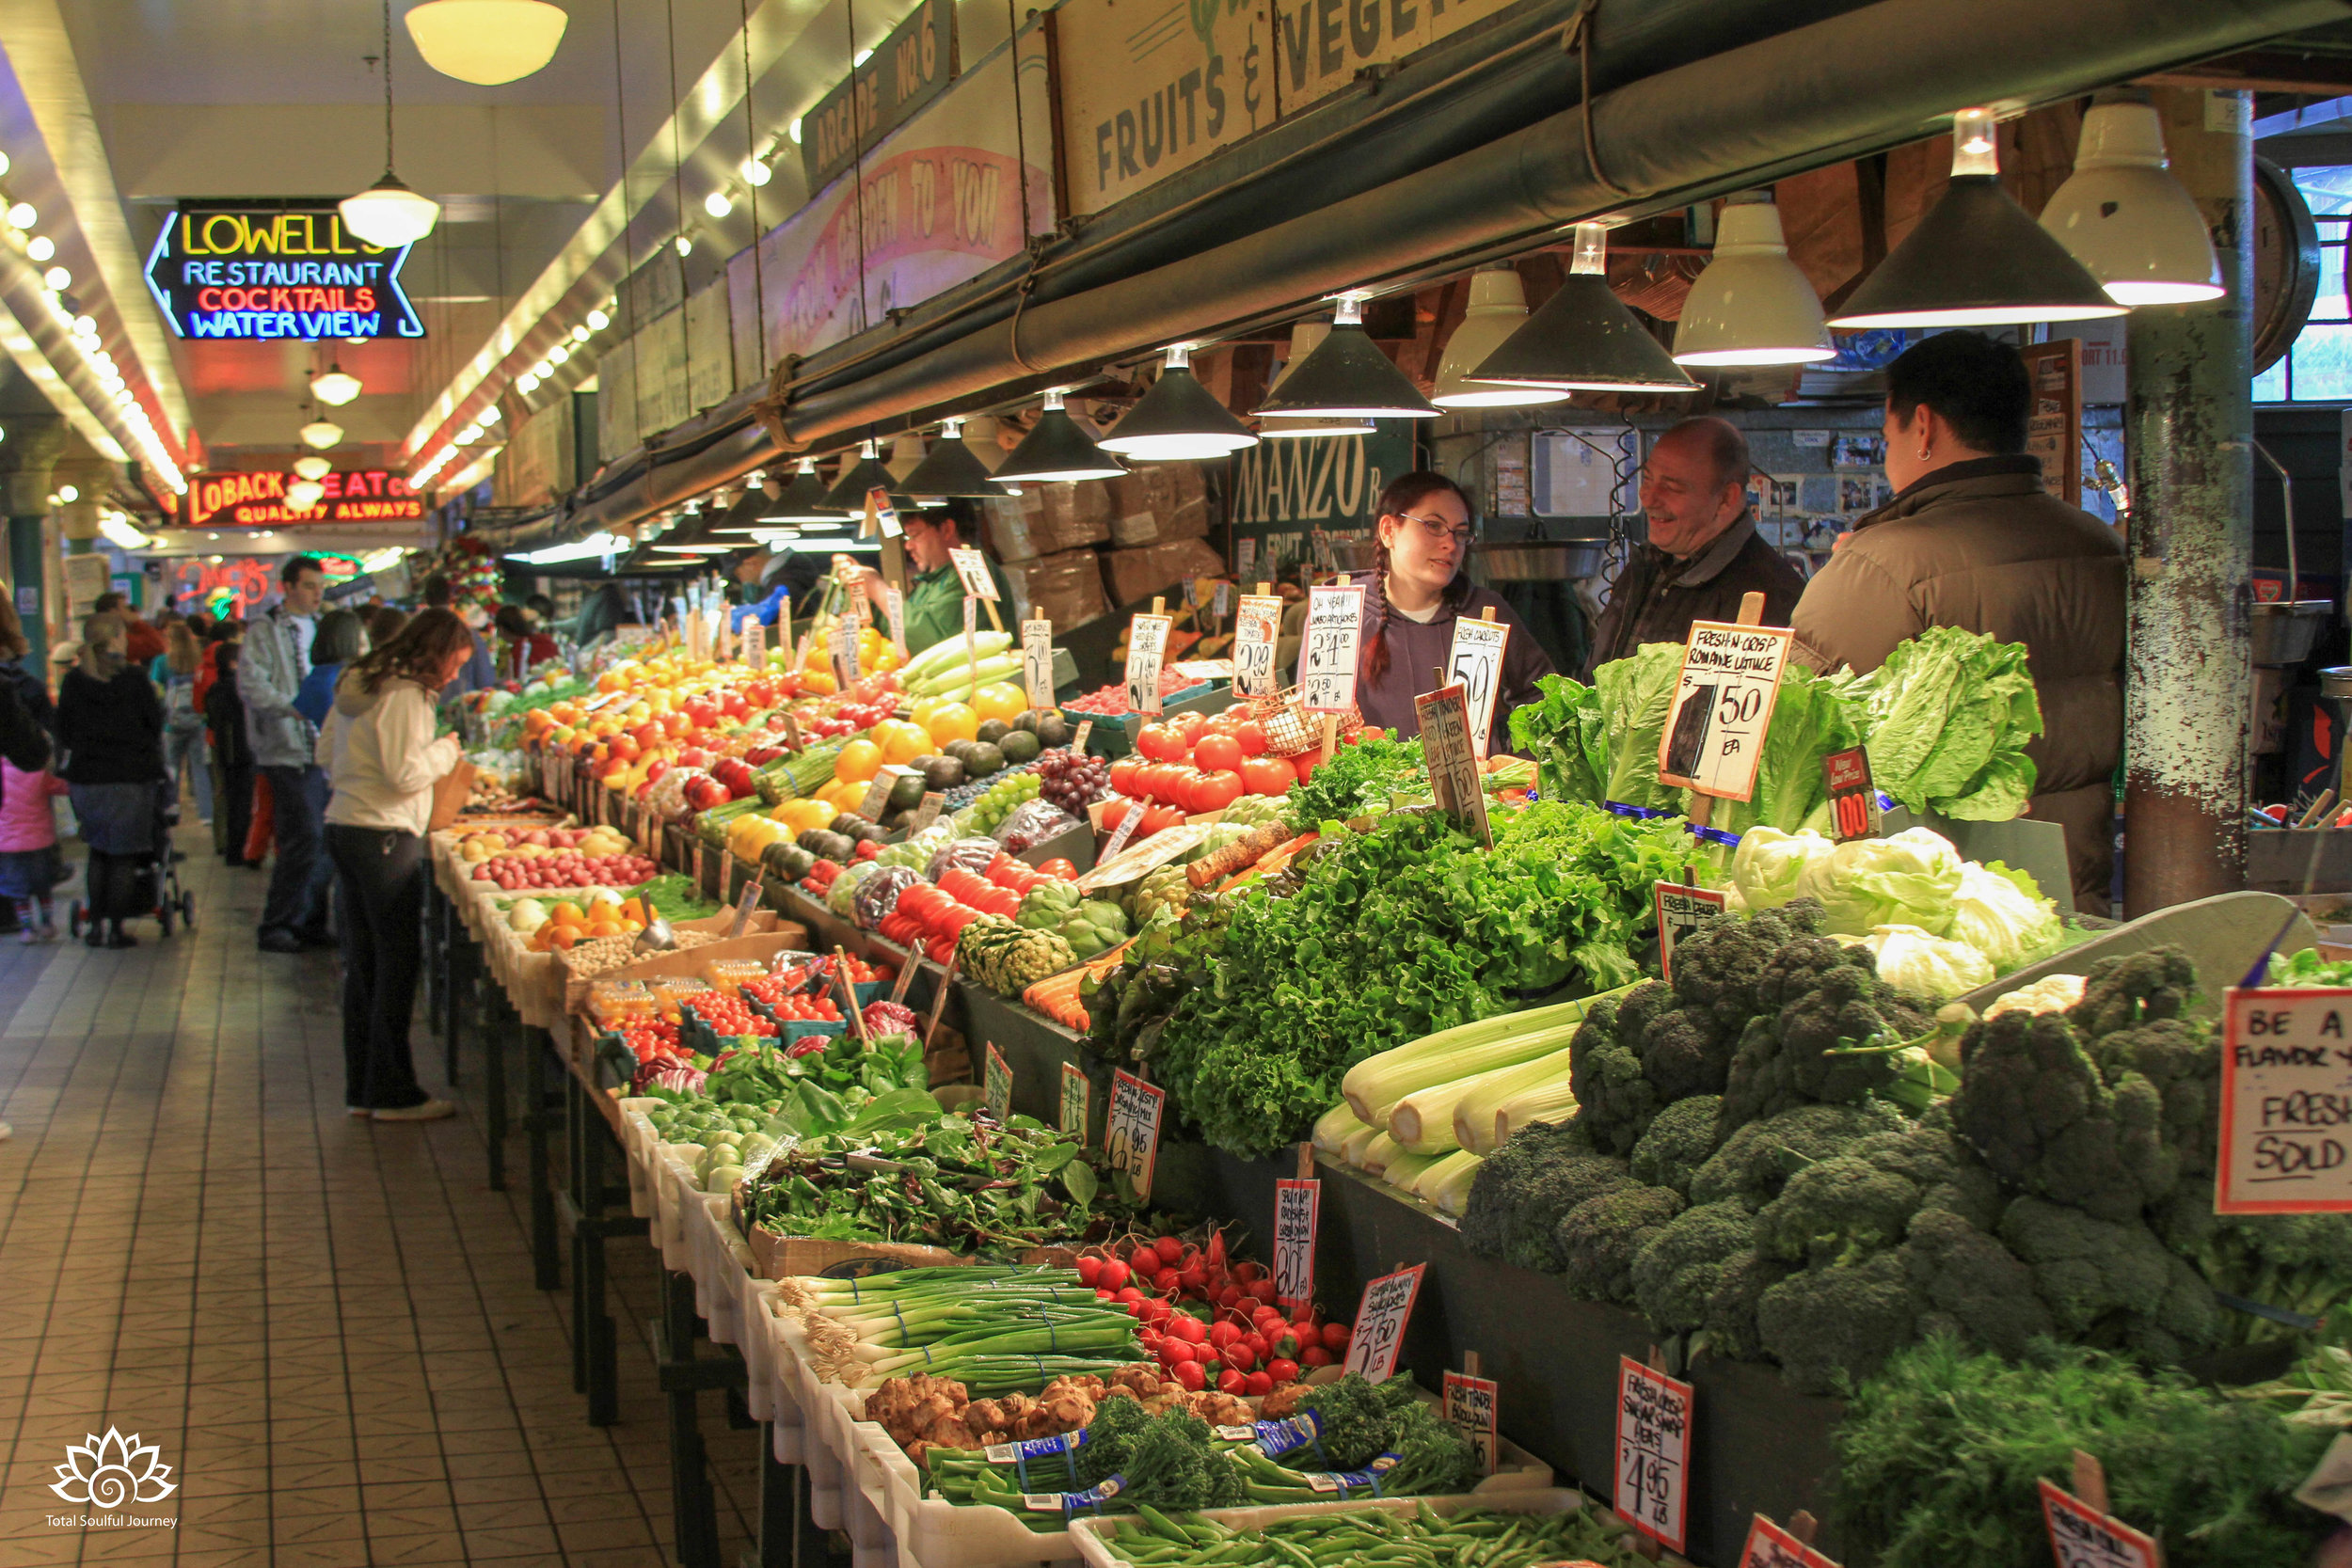 Pike Place Market in Seattle is a colorful place to find fresh fruit, vegetables and seafood. Photo by Paul Garrett